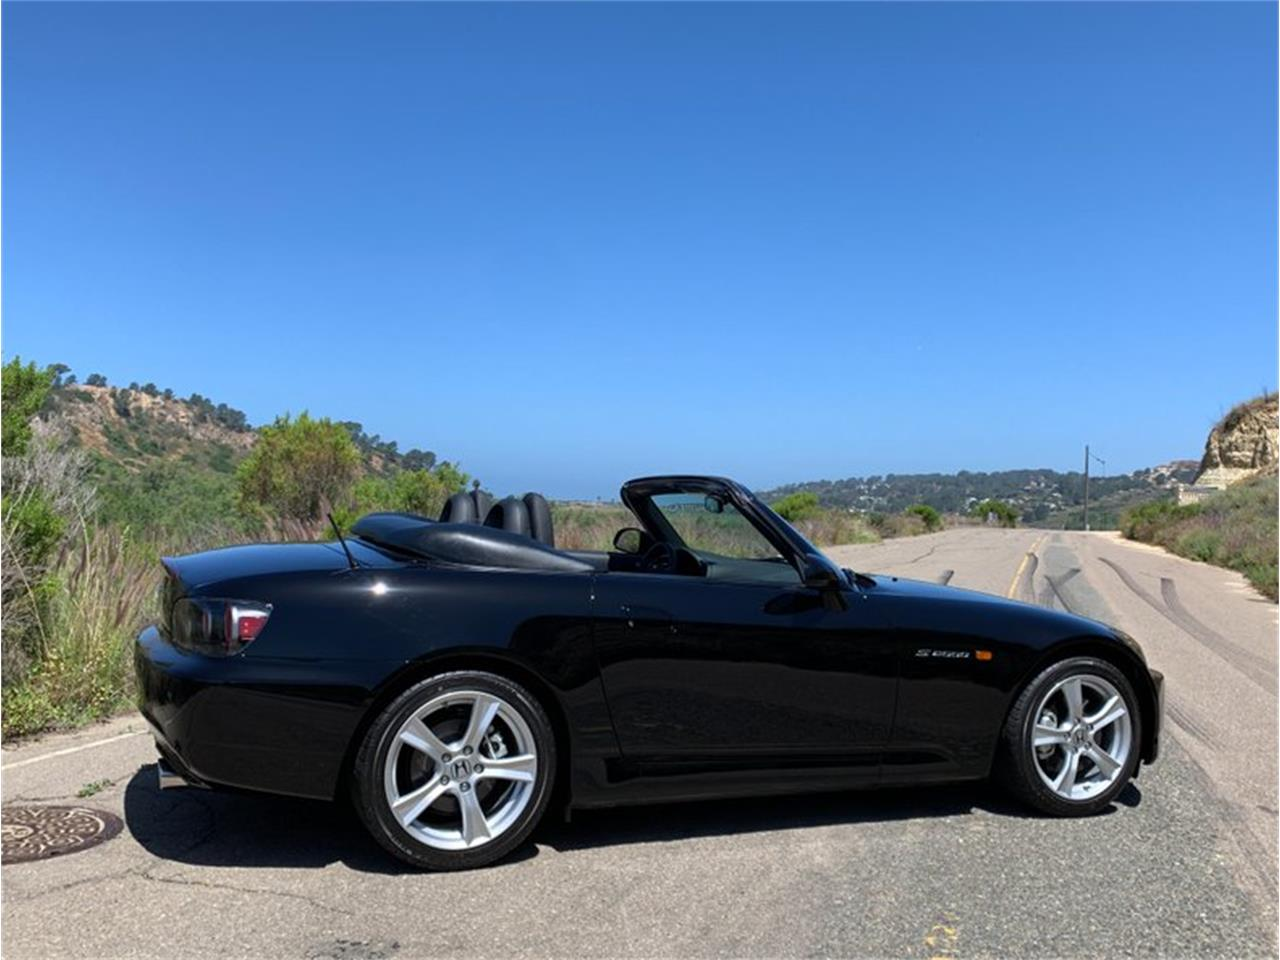 2009 Honda S2000 for sale in San Diego, CA – photo 11